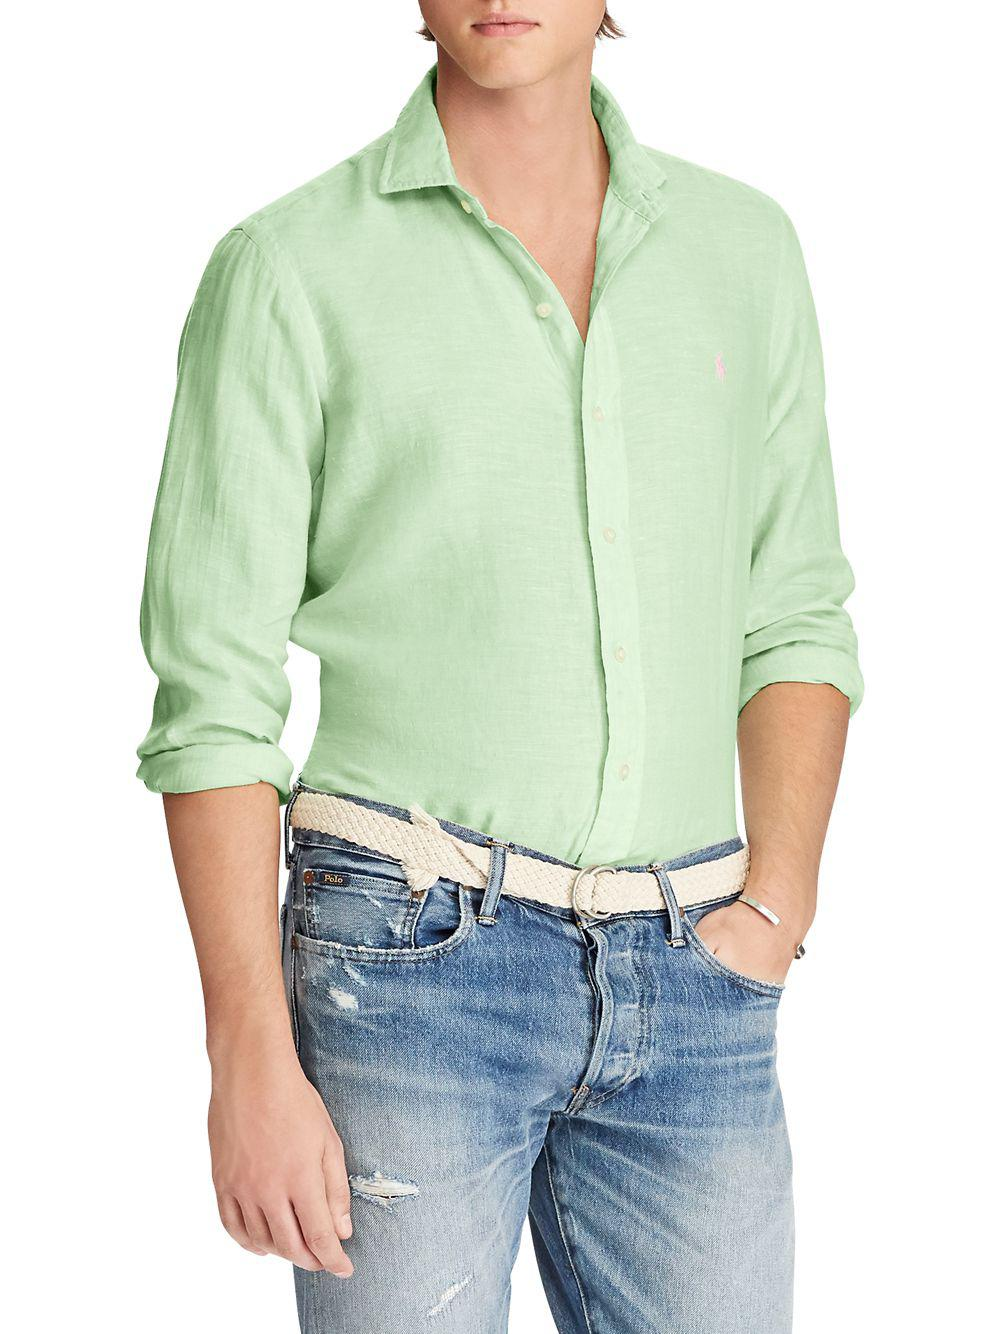 a4f12fdc4 Lyst - Polo Ralph Lauren Classic-fit Linen Sportshirt in Green for Men